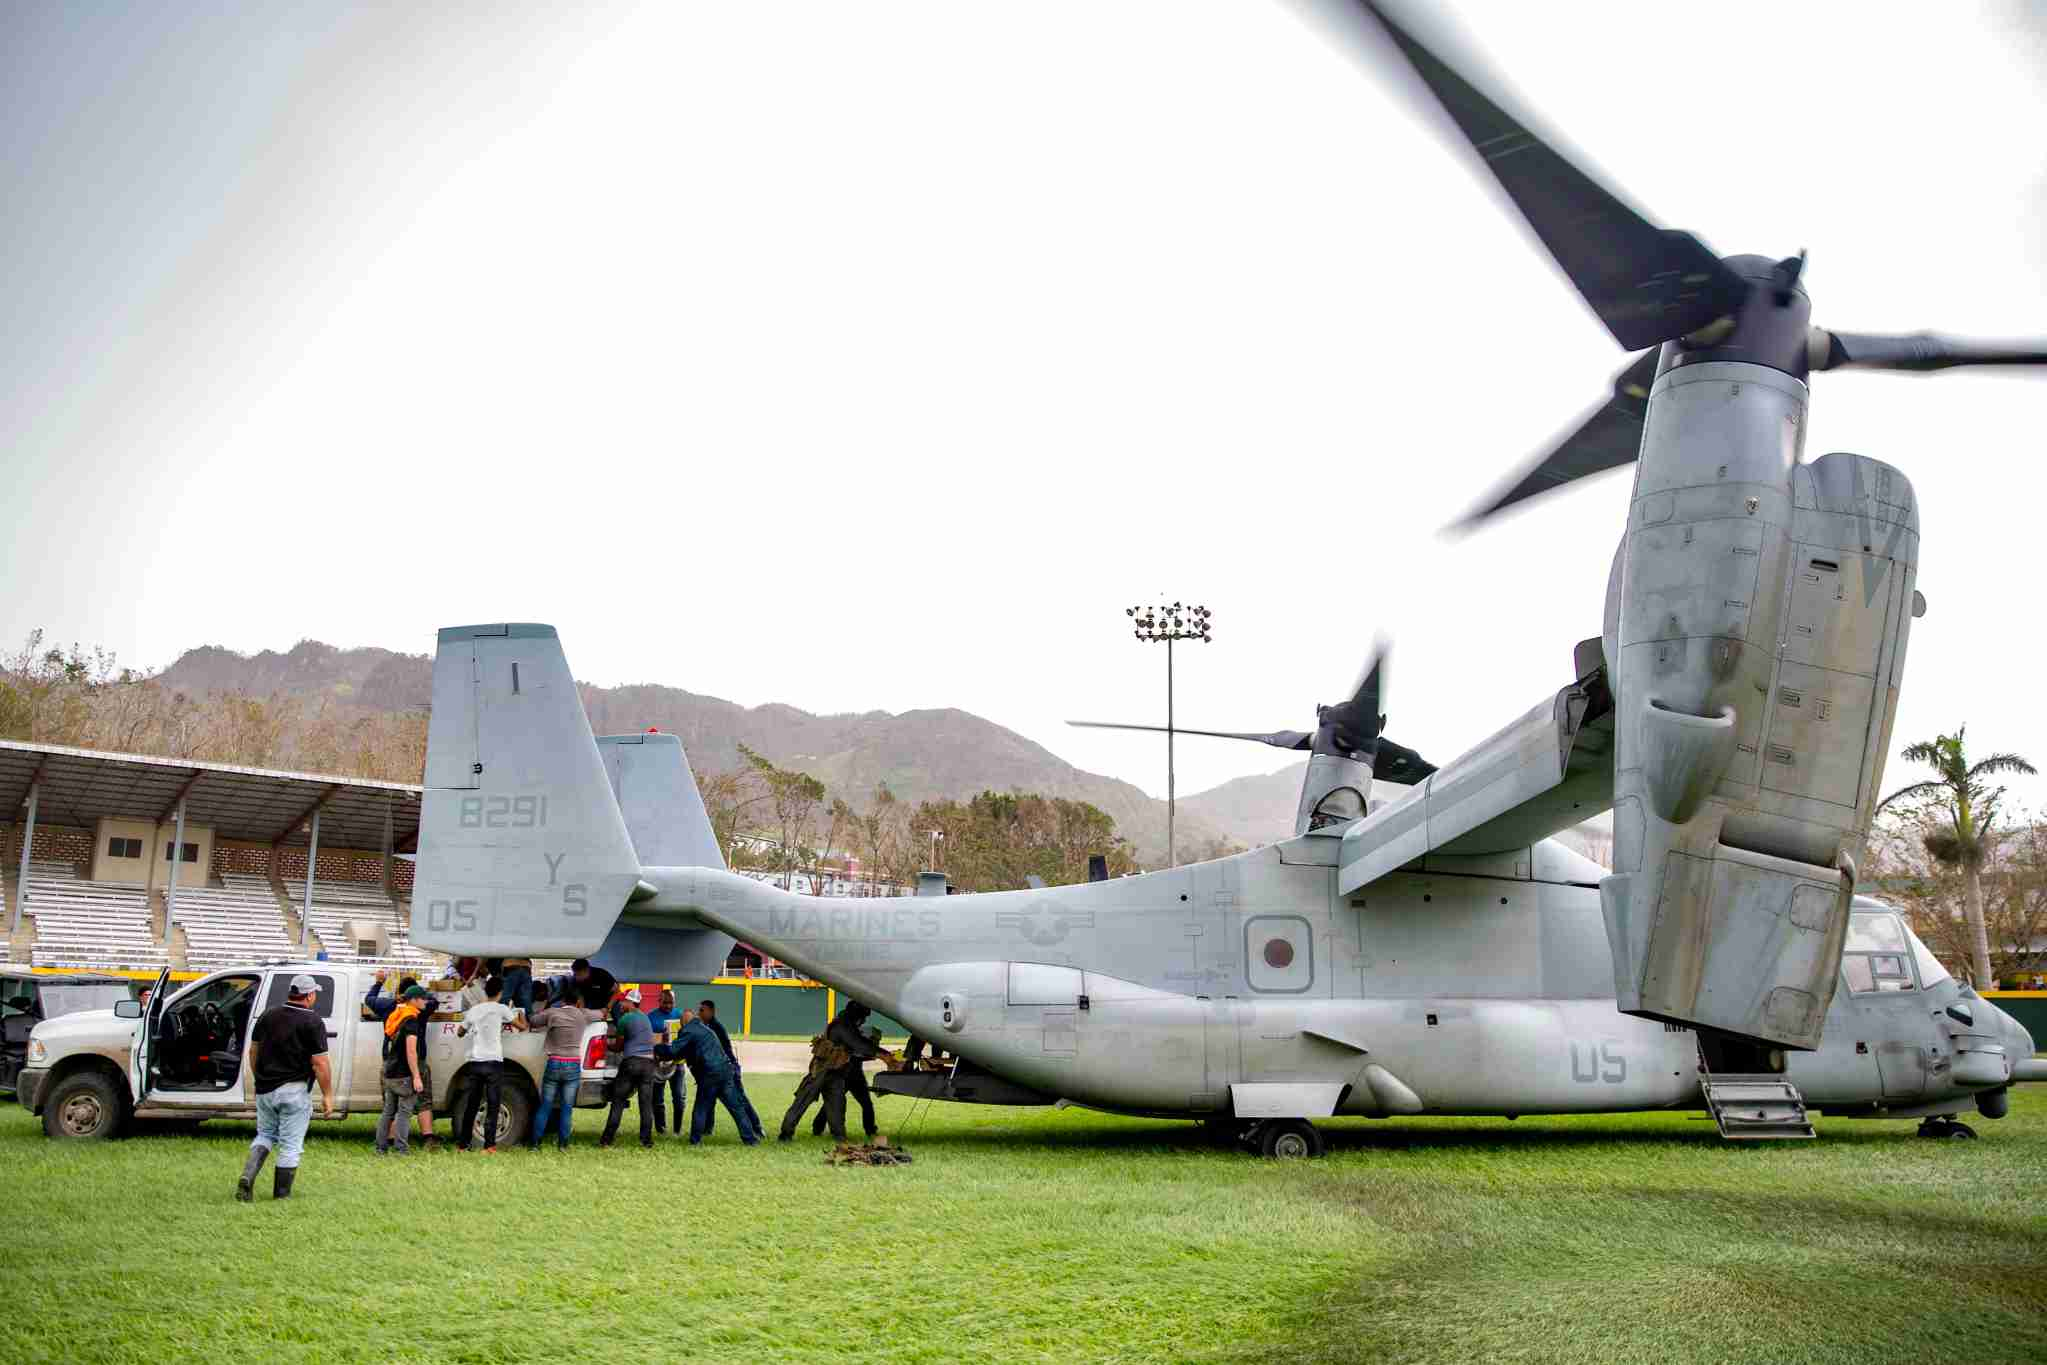 Marines from the amphibious assault ship USS Kearsarge and area residents unload food and drinking water from an MV-22 Osprey aircraft September 27, 2017 in Jayuya, Puerto Rico.(Photo by Ryre Arciaga/US Navy via Getty Images)